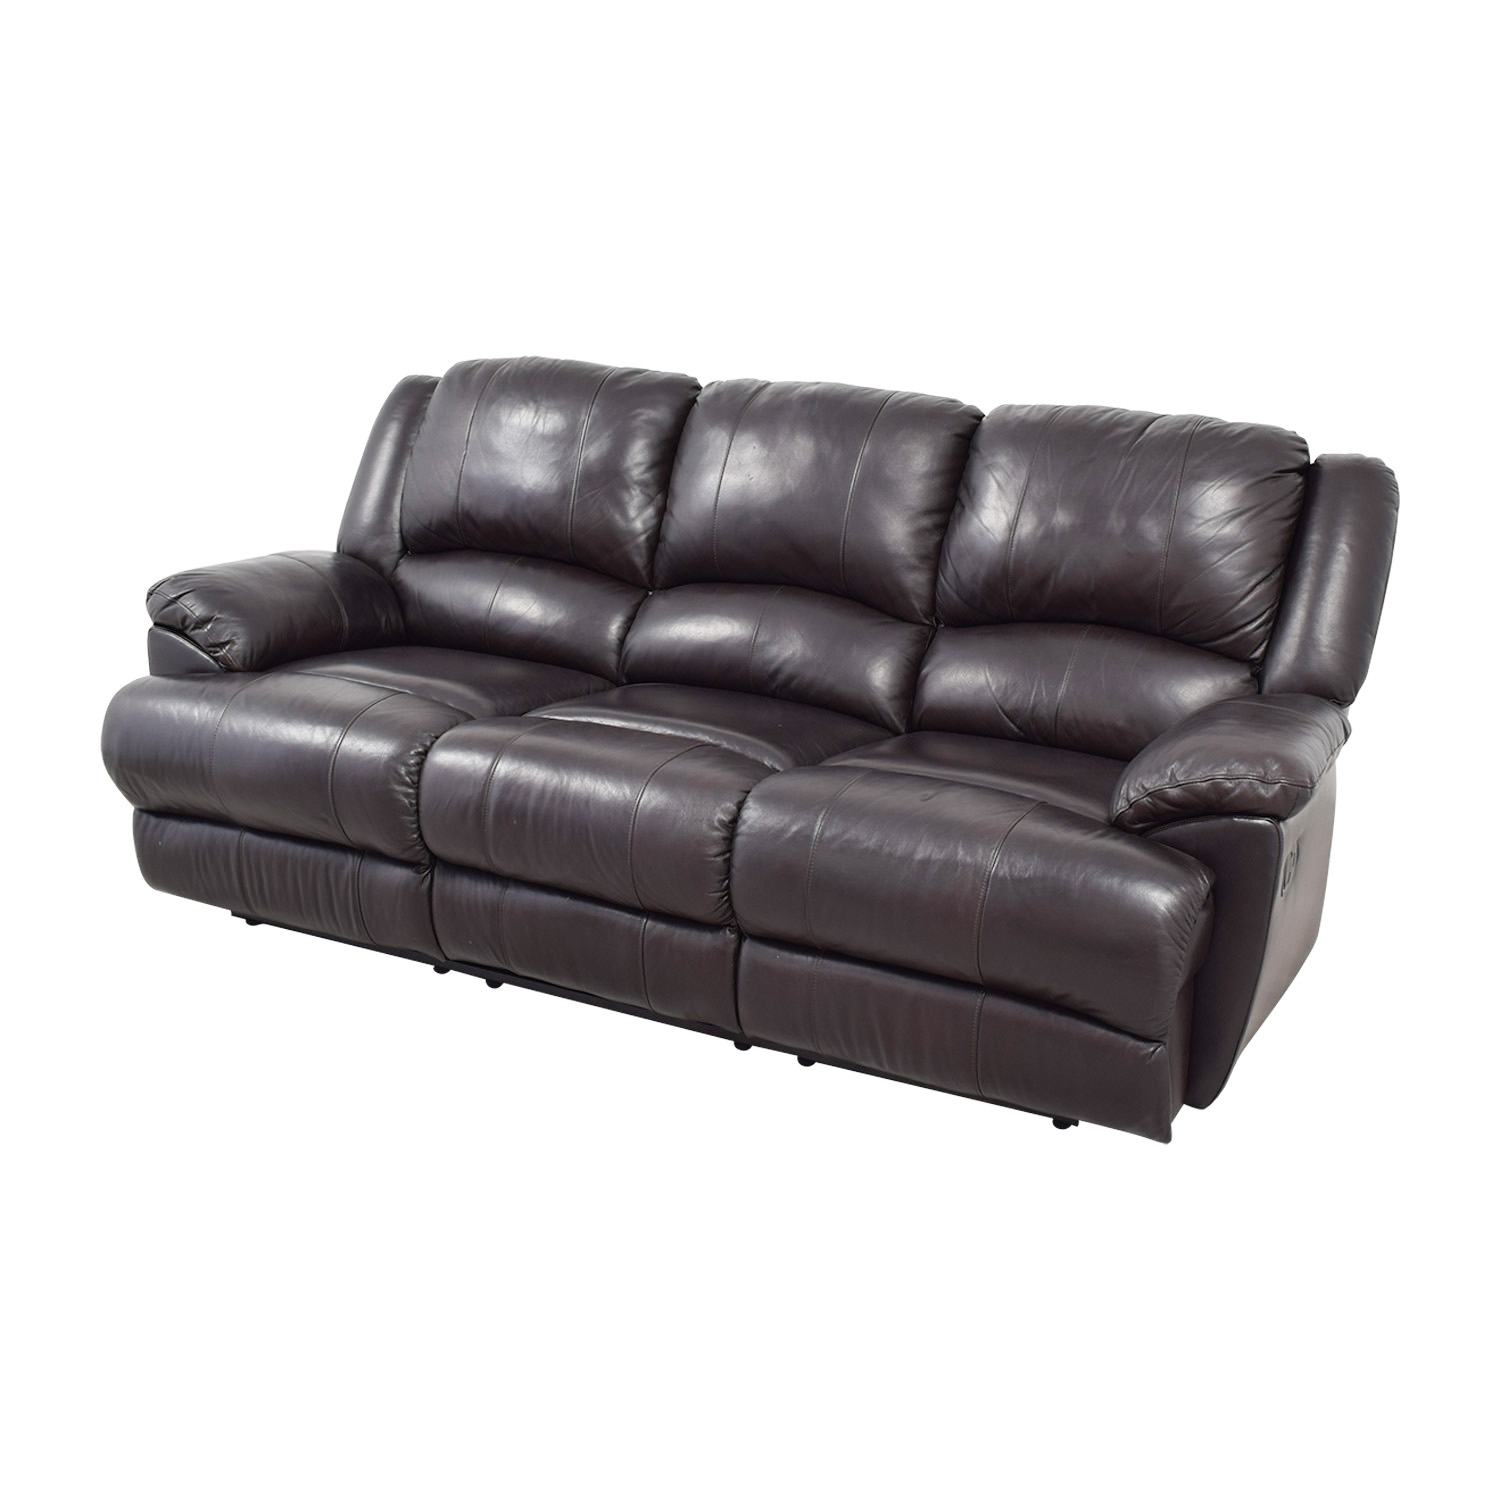 Black Leather Sofa With Recliner: Ashley Furniture Ashley Furniture Black Leather